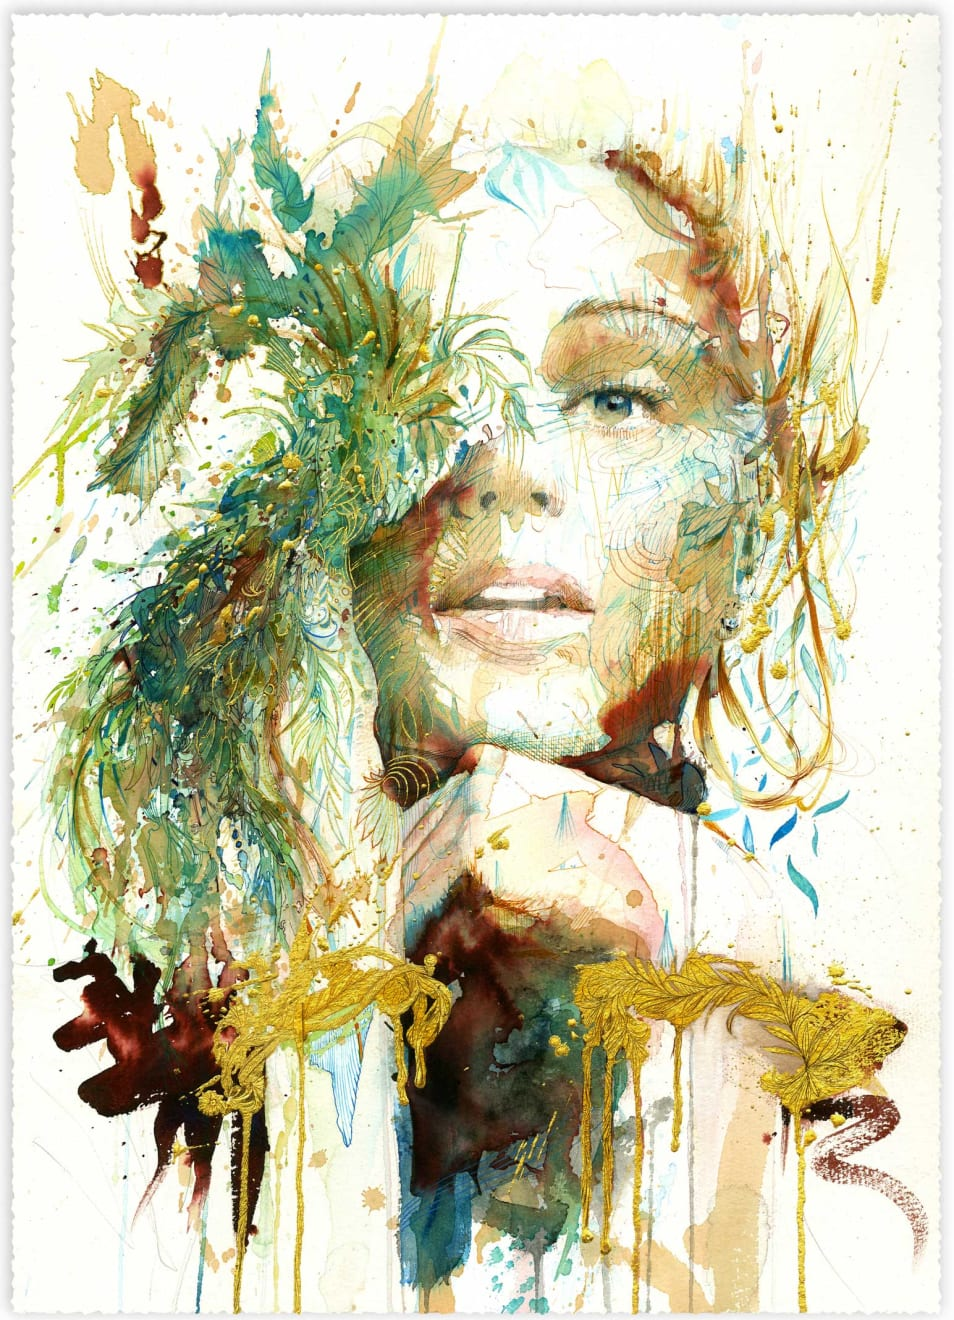 Carne Griffiths, The Present, 2020